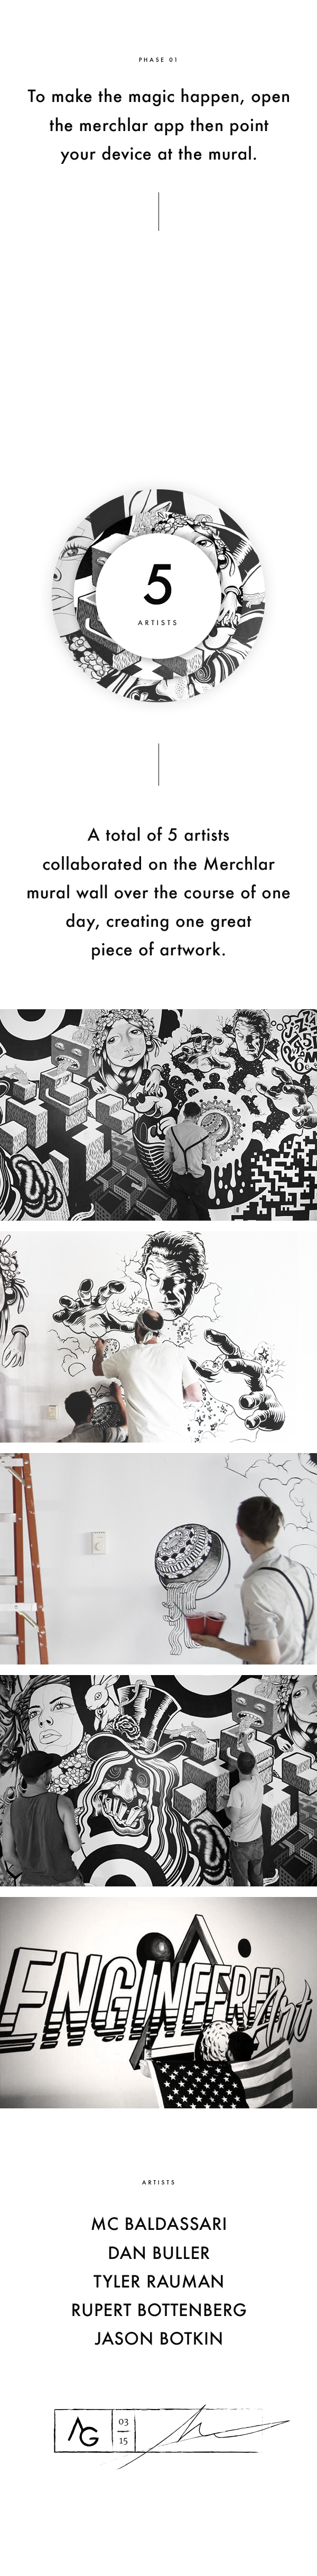 en masse Merchlar augmented reality AR Mural Graffity black and white arts PERFORMING iphone